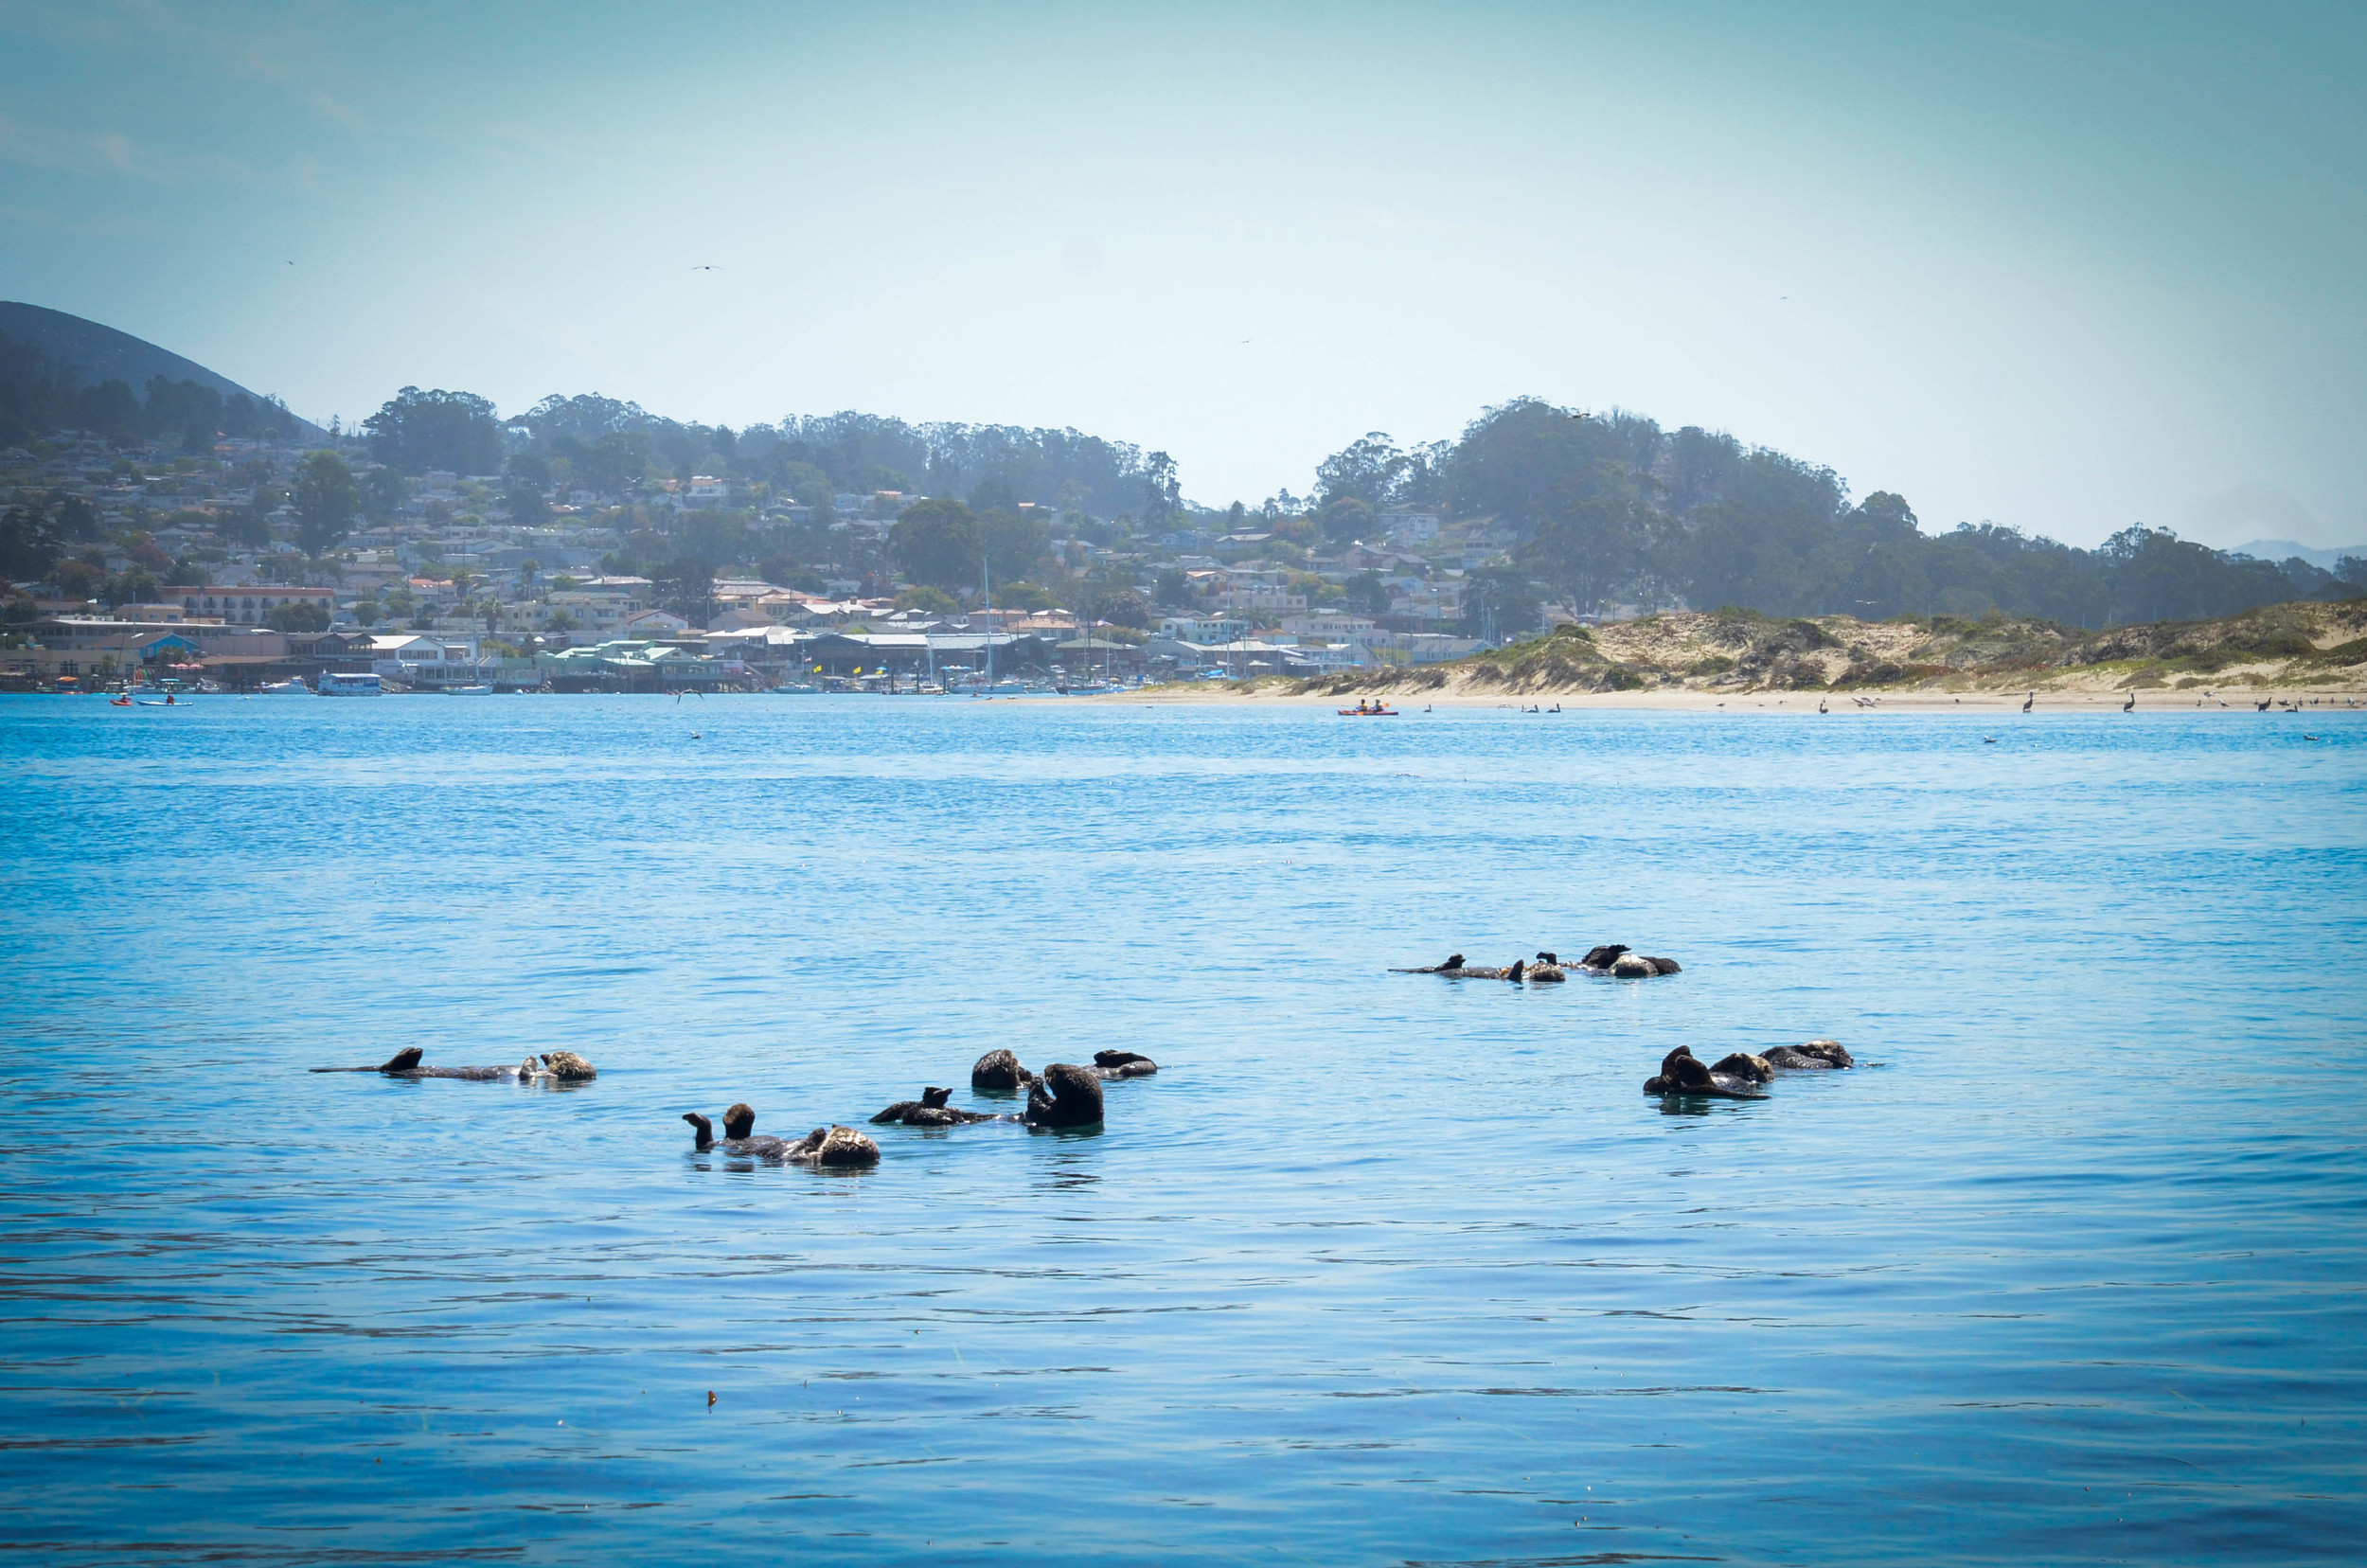 It was such a nice surprise to see so many sea otters in Morro Bay. They were definitely super adorable to watch.